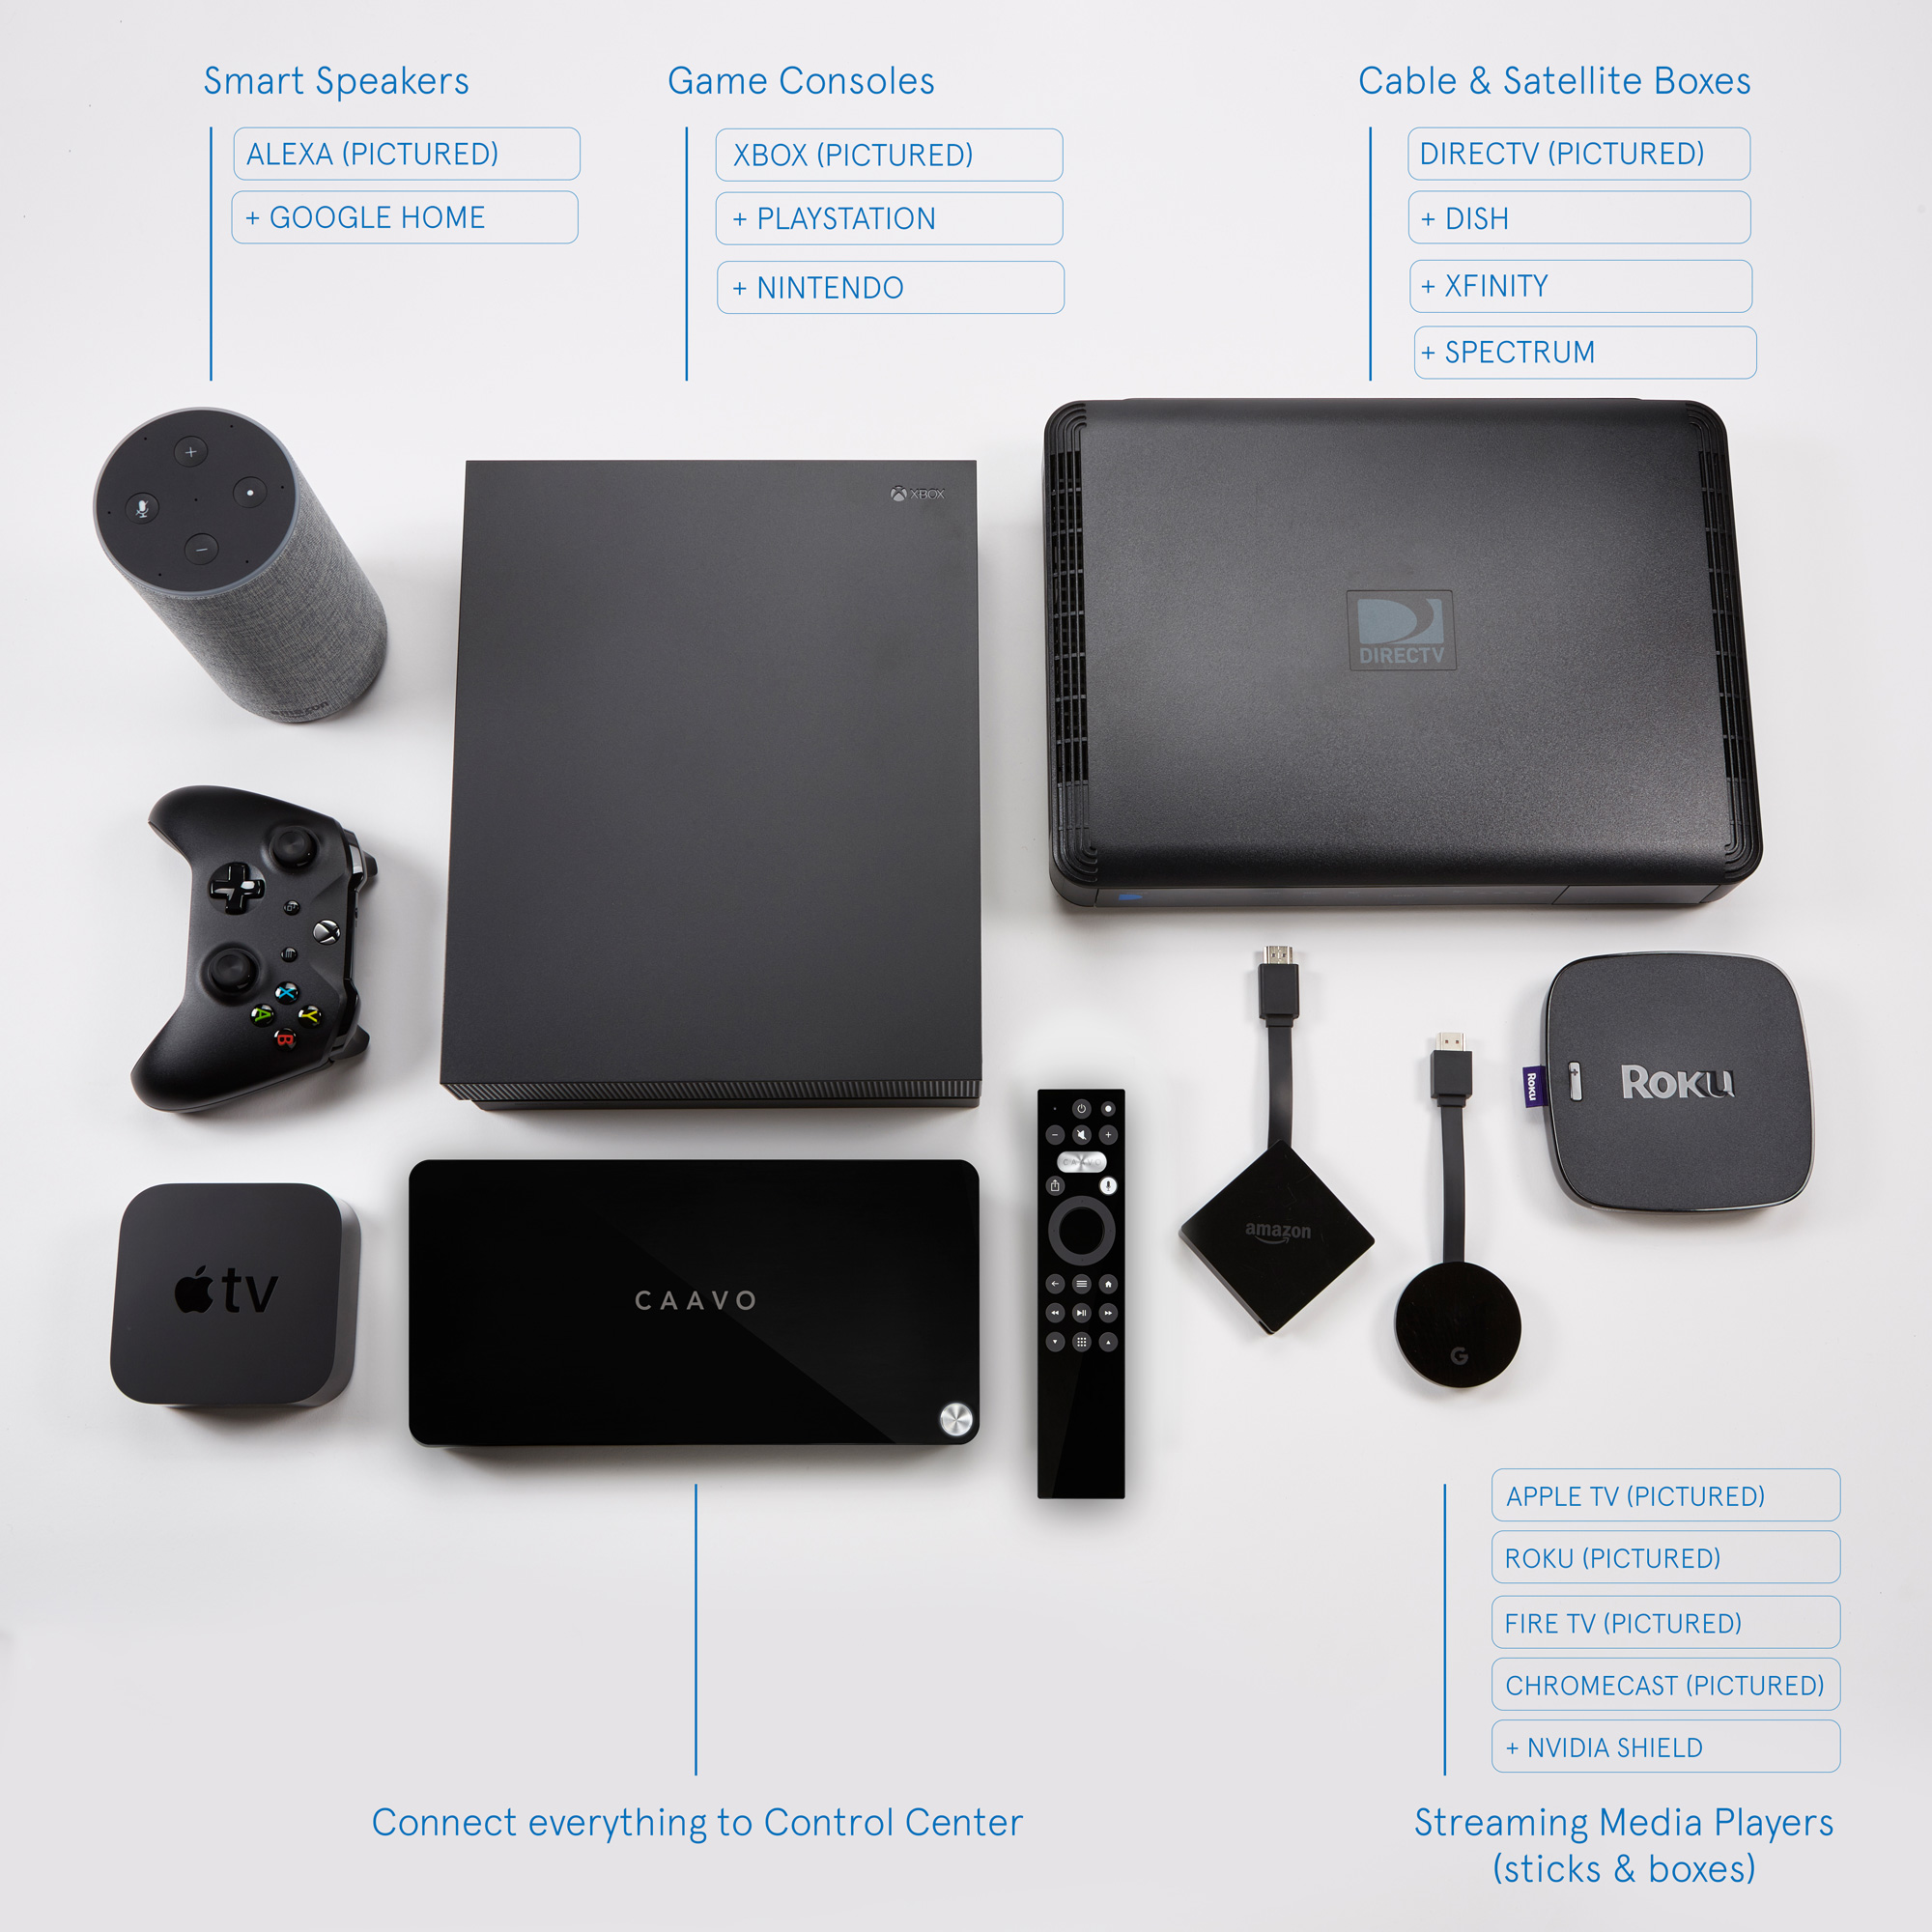 Caavo Control Center Universal TV Remote & Smart Home Hub with HDMI Switch  + $35 VUDU Credit